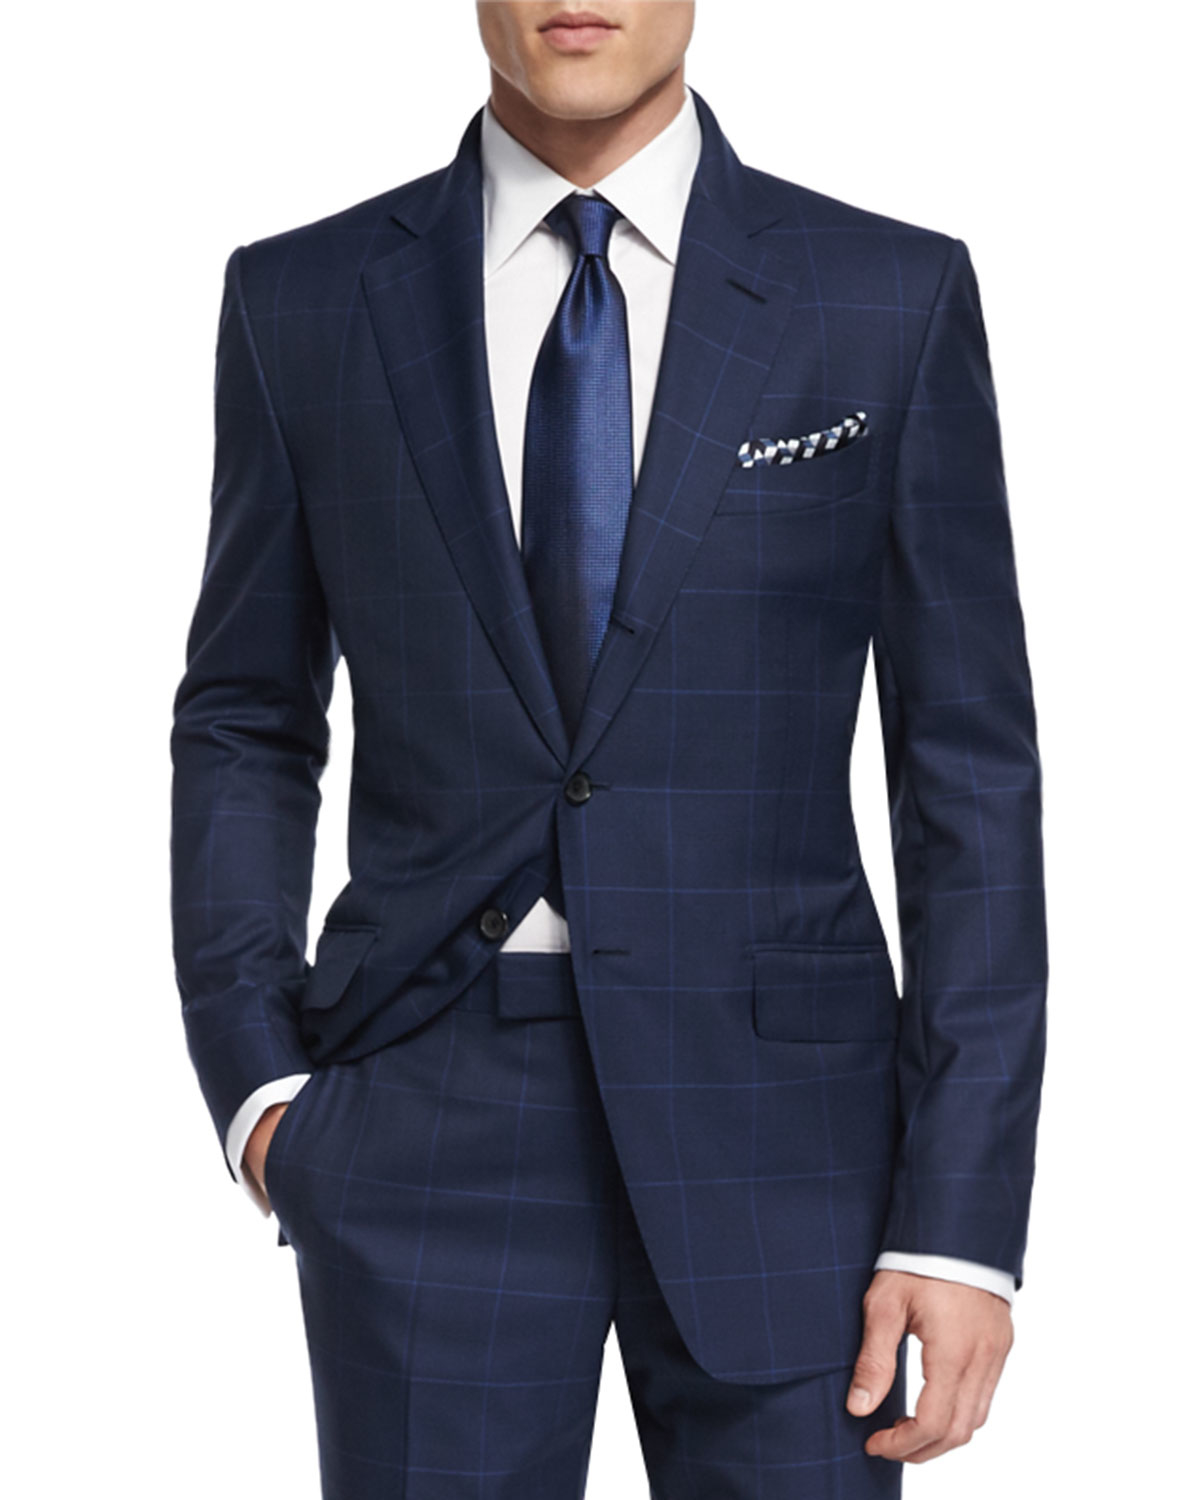 Tom Ford O Connor Base Plaid Suit In Blue For Men Lyst